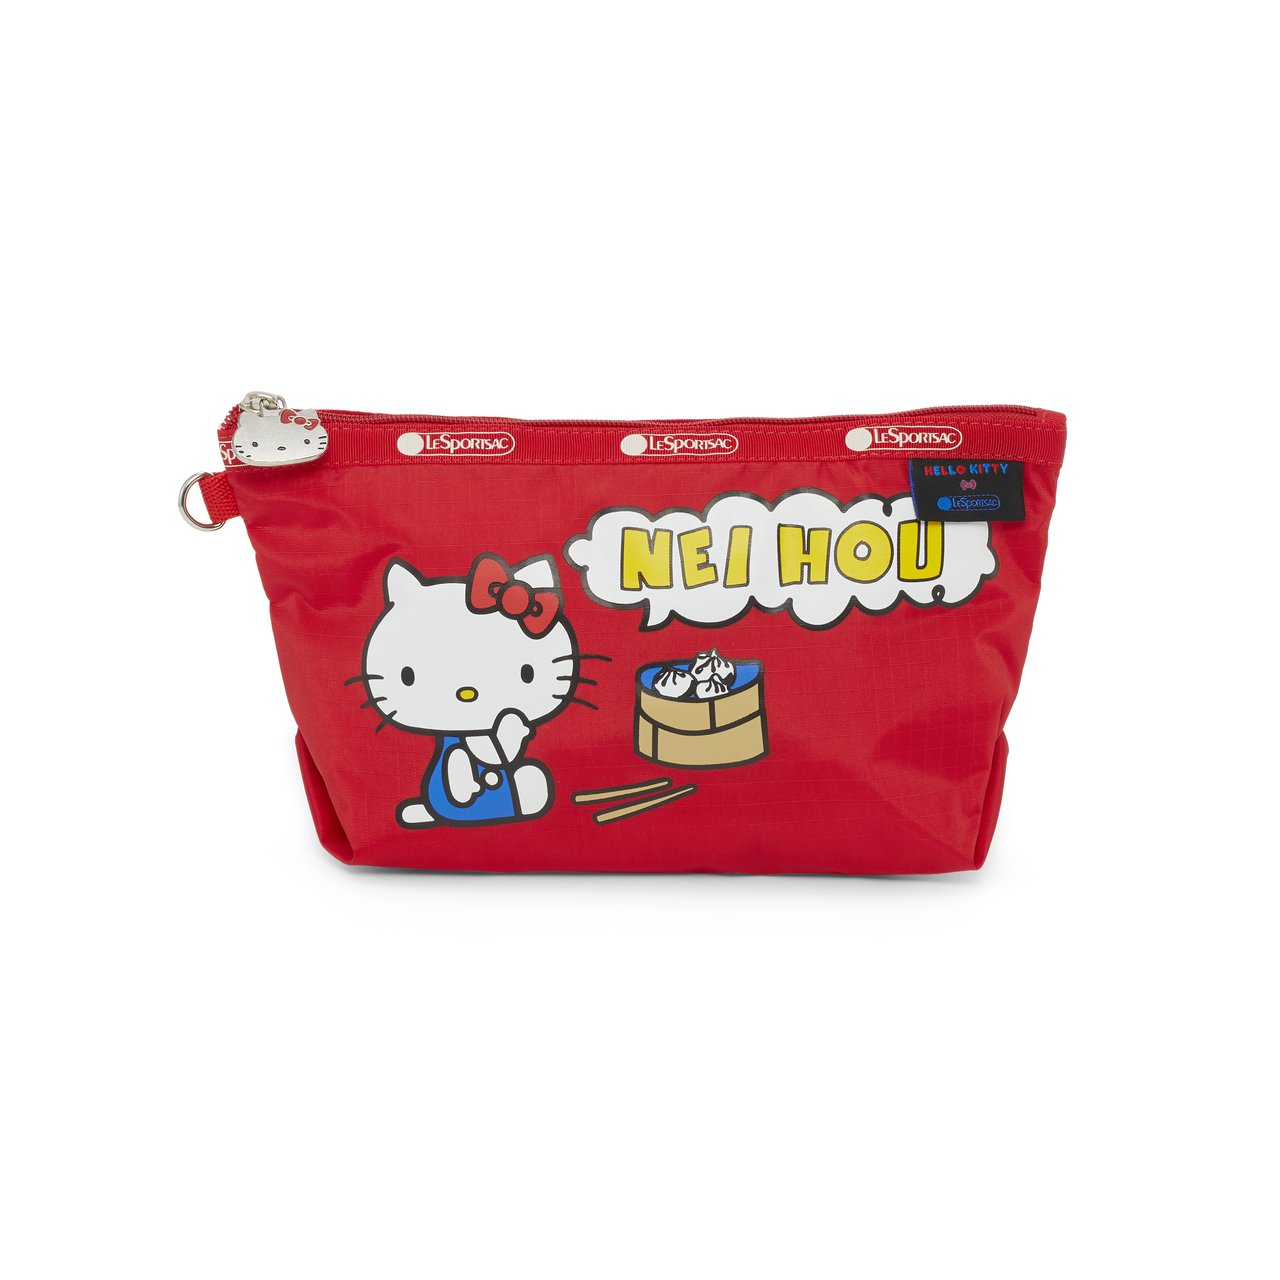 Hello Kitty x LeSportsac聯名系列「NEI HOU」中梯形...